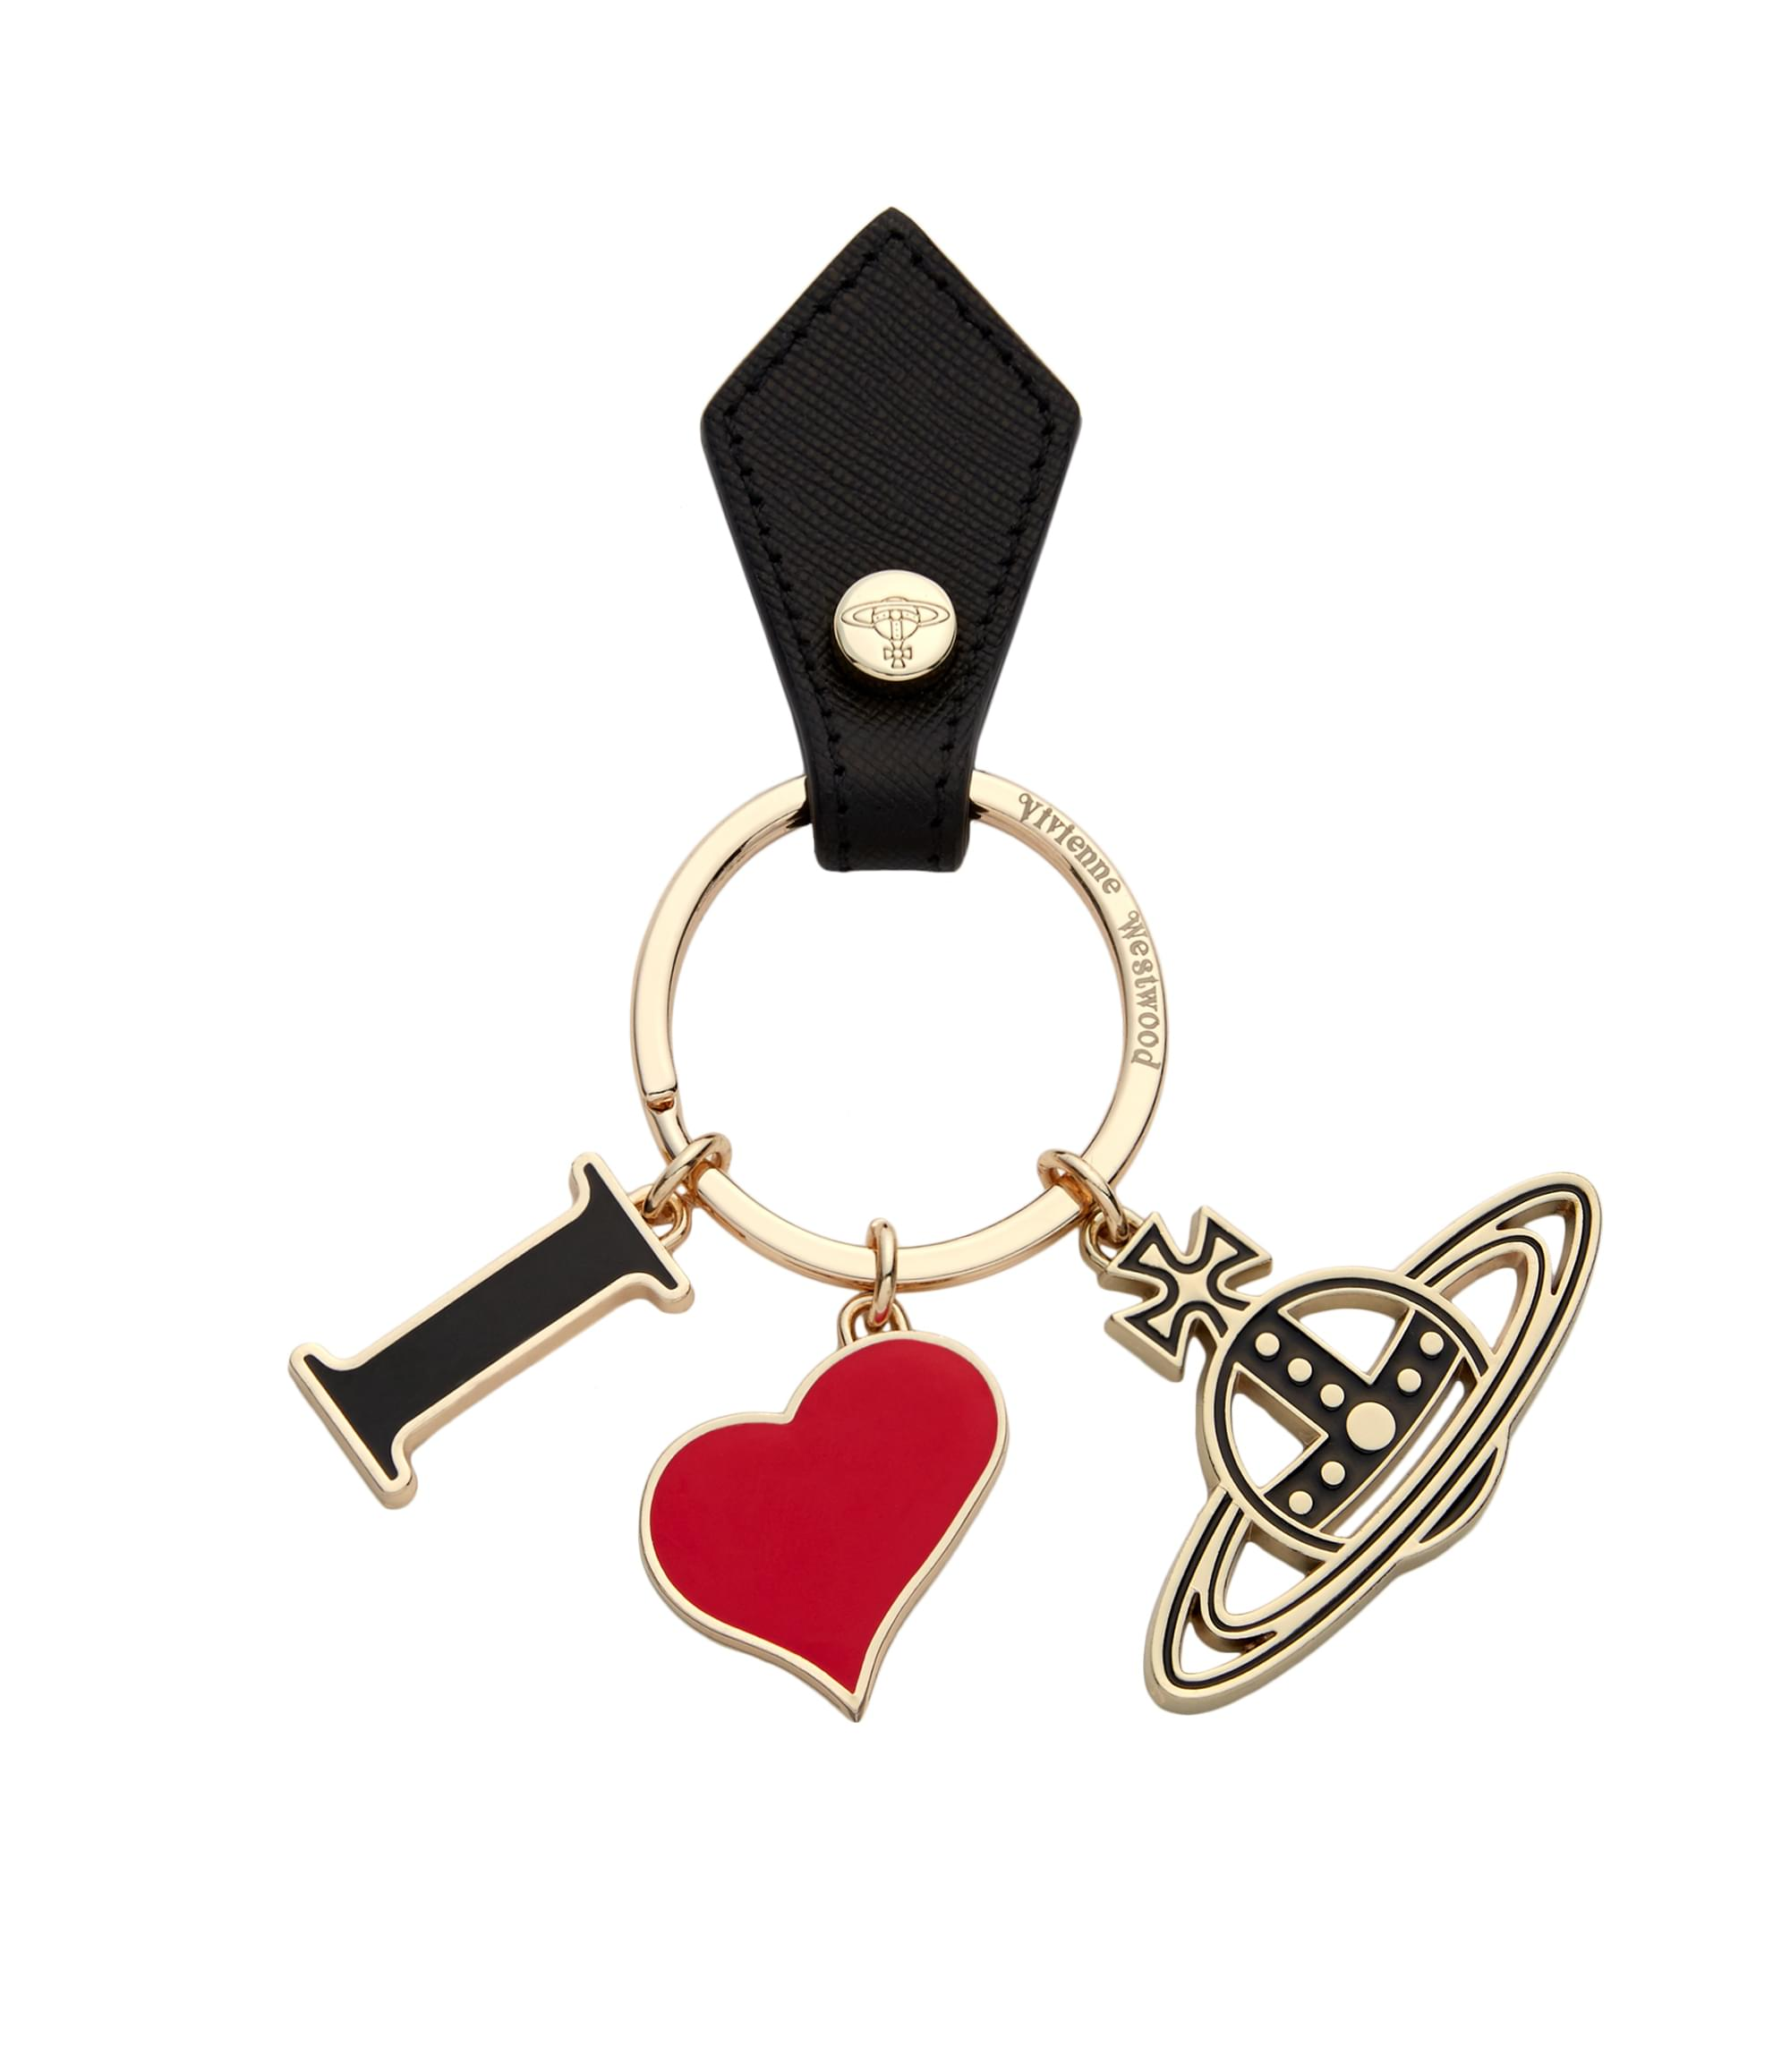 Vivienne Westwood I Love Orb Key Ring 321566 Black